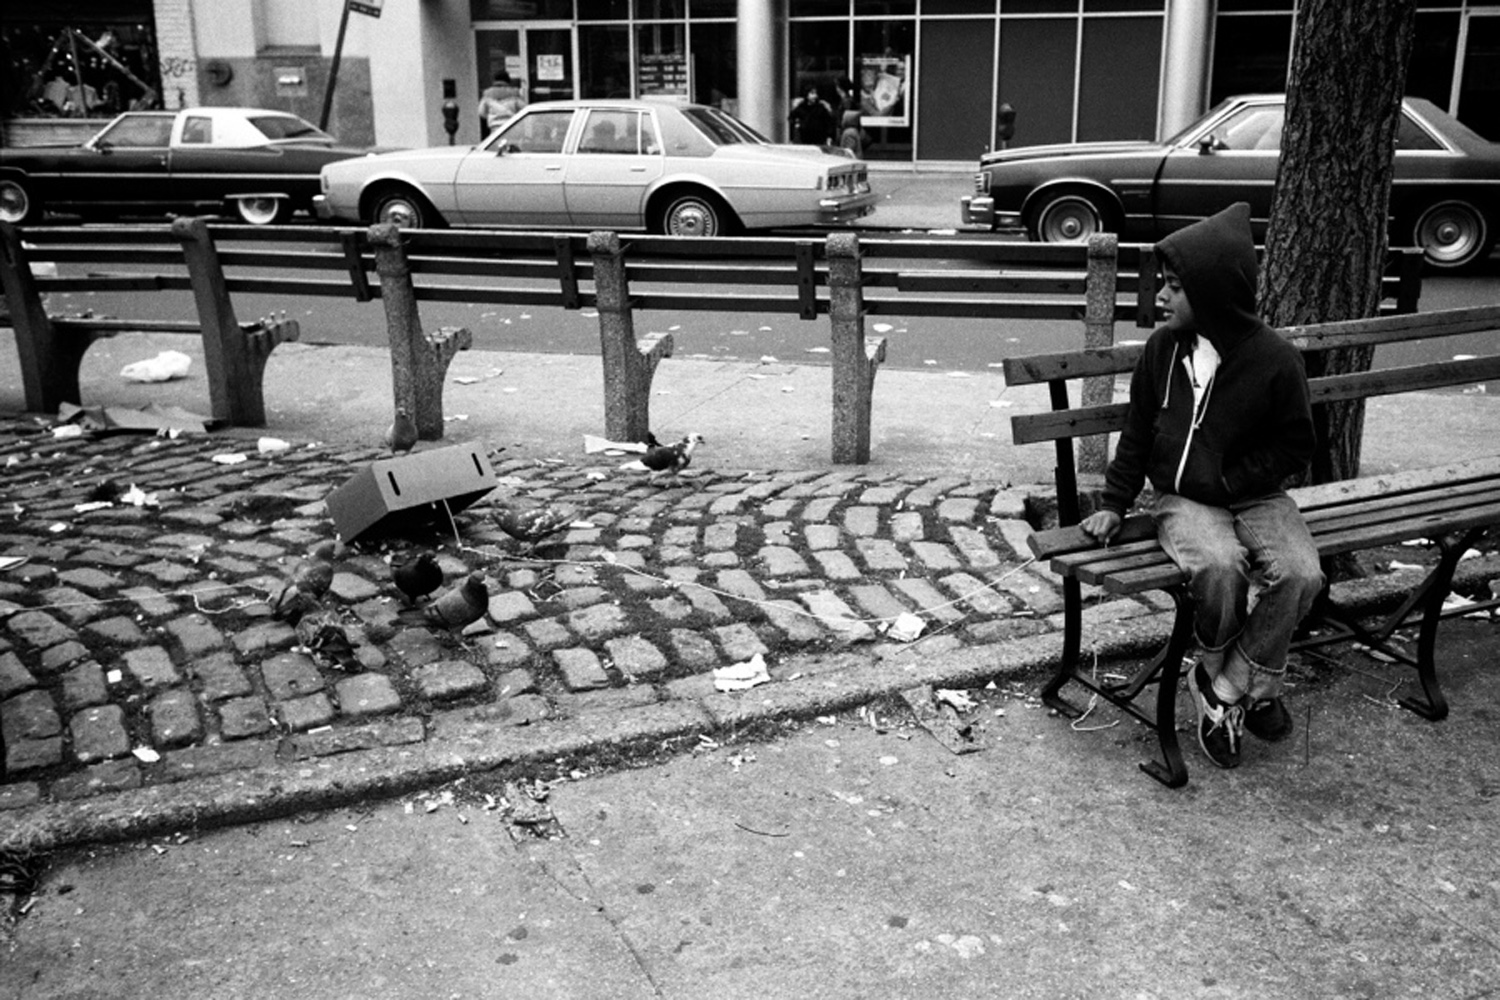 A boy tries to catch a pigeon, from Bronx Boys (FotoEvidence, 2011) by Stephen Shames.